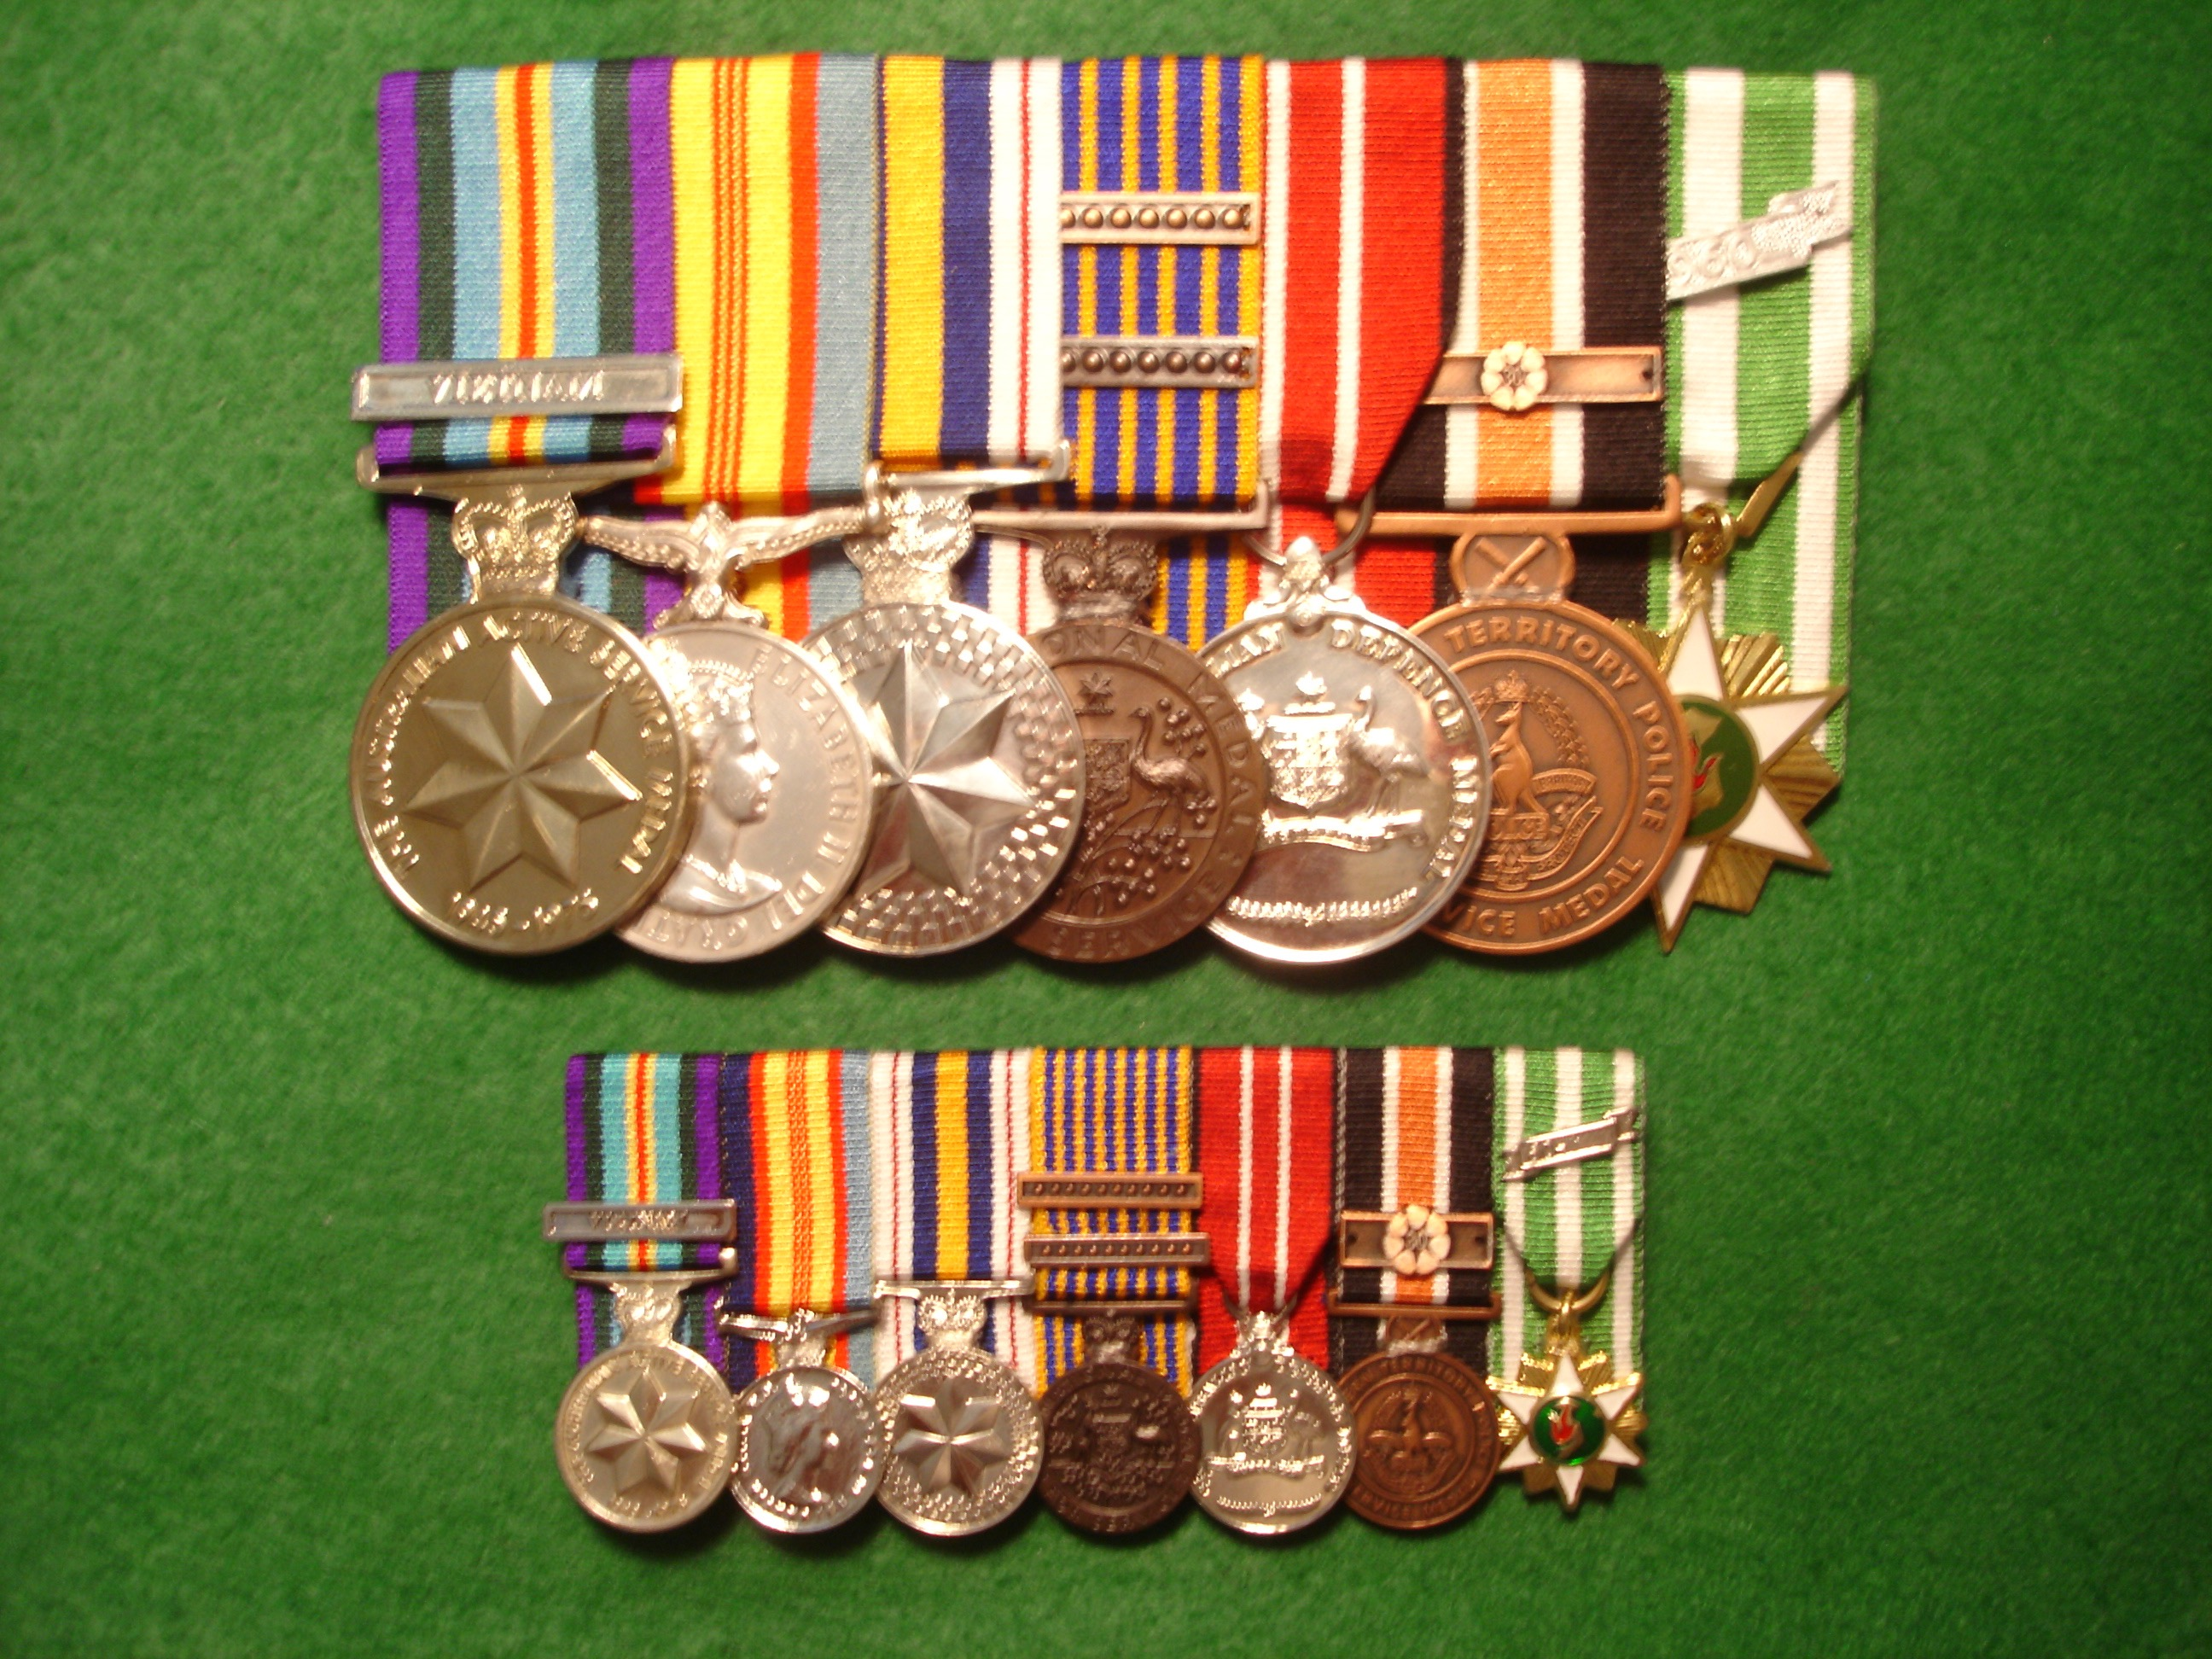 McNamee Medals and Badges